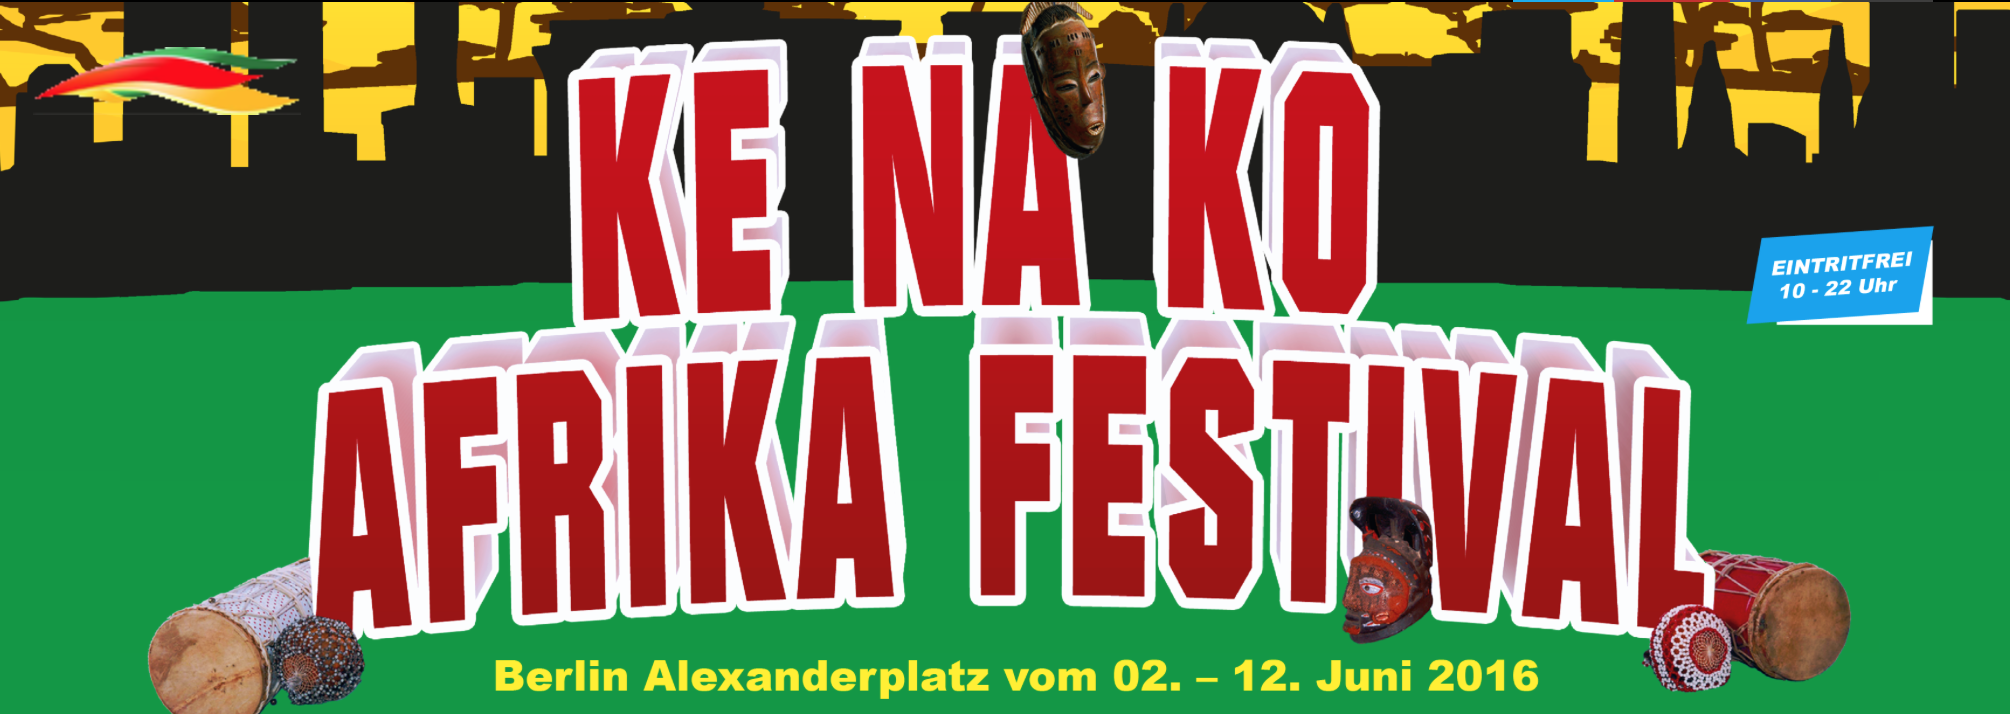 "On the 11th and the 12th of June the ""Messe the Brückenbauer"" will be in the Mandela-Tent of the KENAKO Event. Organizations like Pendo will have the opportunity to present their projects and targets. We would be happy if you pass by to have a chat with us and to and enjoy the Afrika Festival 2016. Fore more informations visit the website of  KENAKO ."